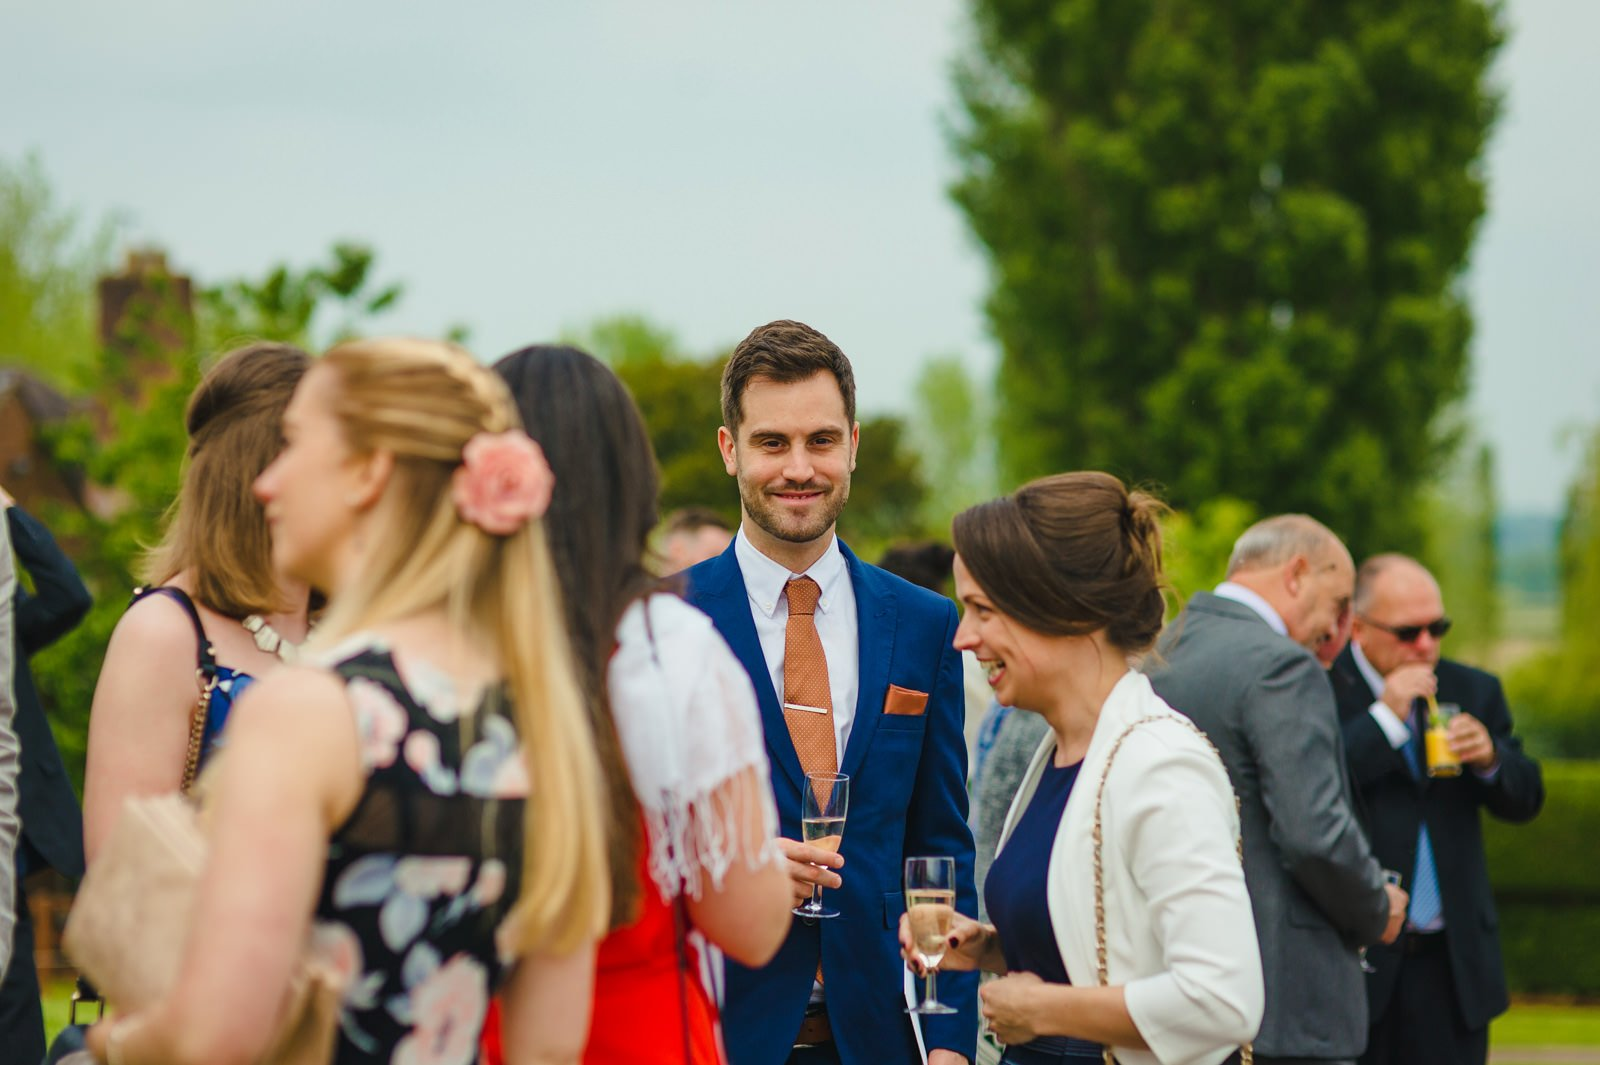 millers of netley wedding 54 - Millers Of Netley wedding, Dorrington, Shrewsbury | Emma + Ben